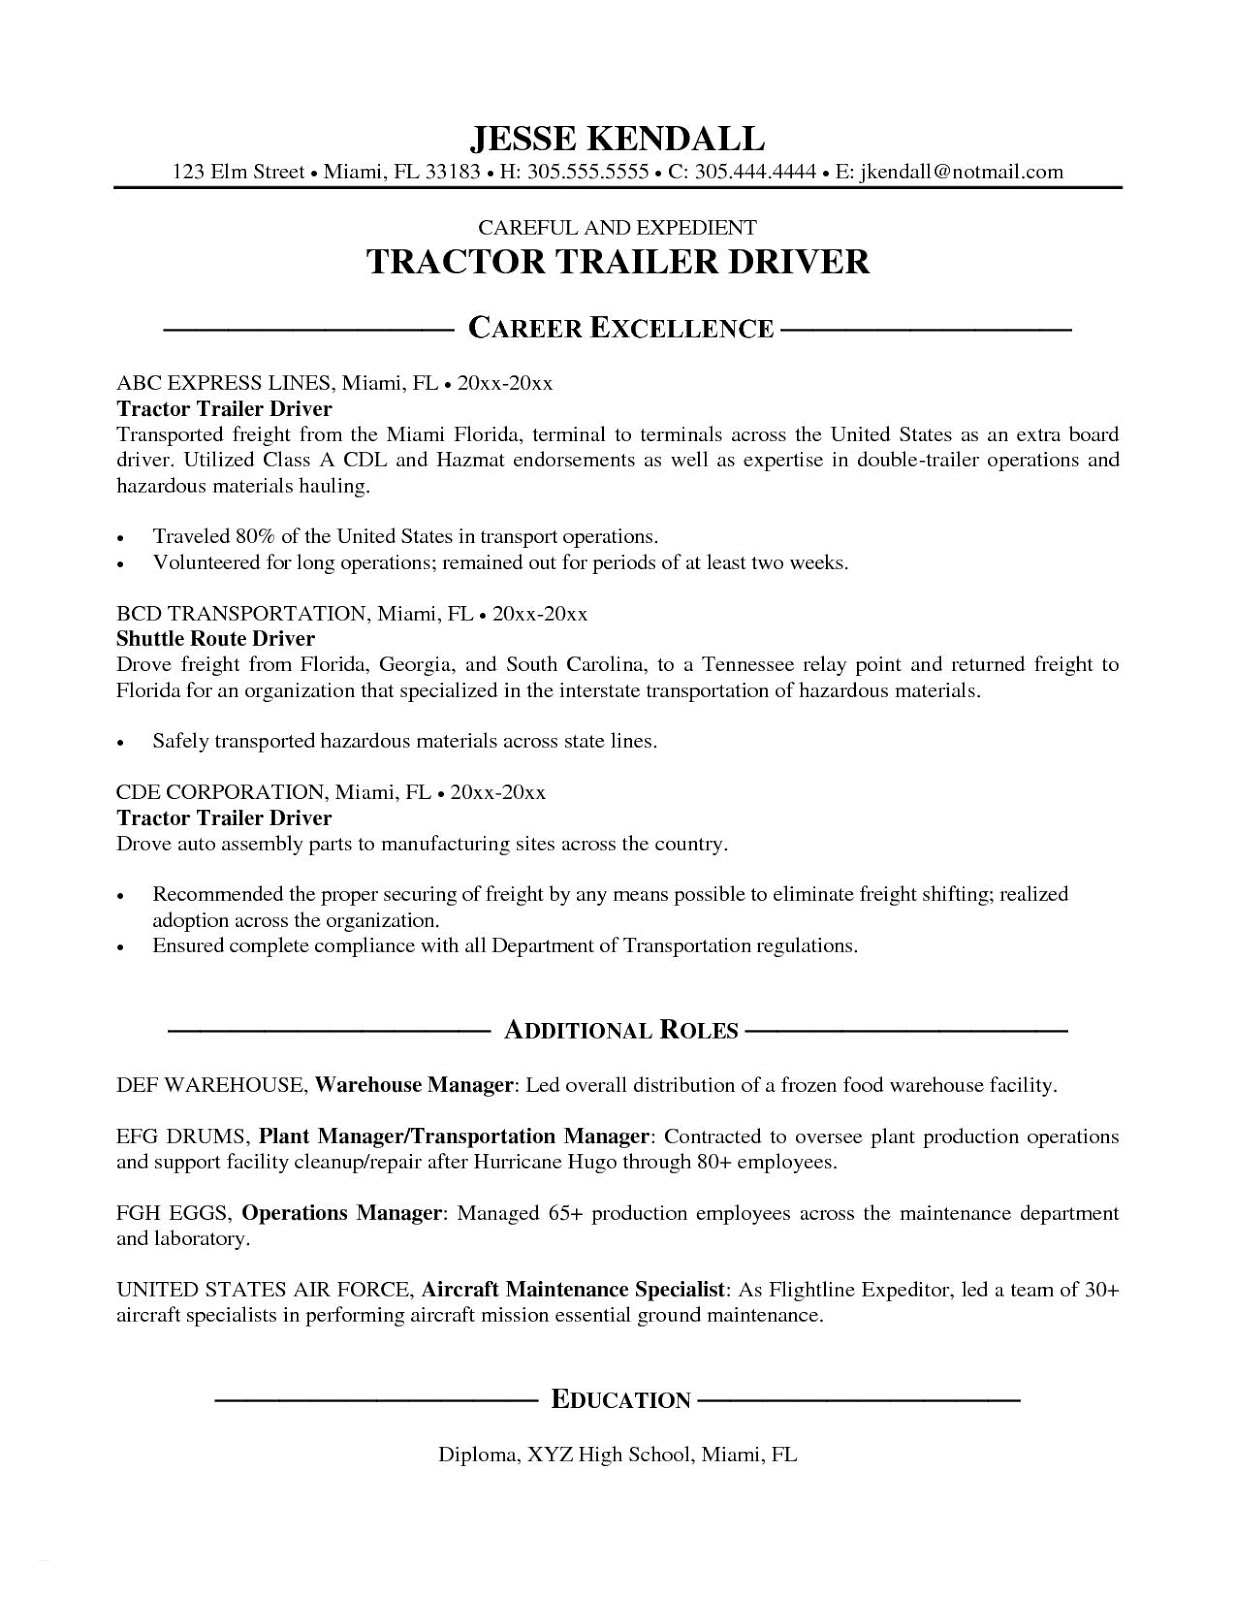 truck driver resume objective templates lebenslauf vorlage driving examples housekeeping Resume Truck Driving Resume Objective Examples